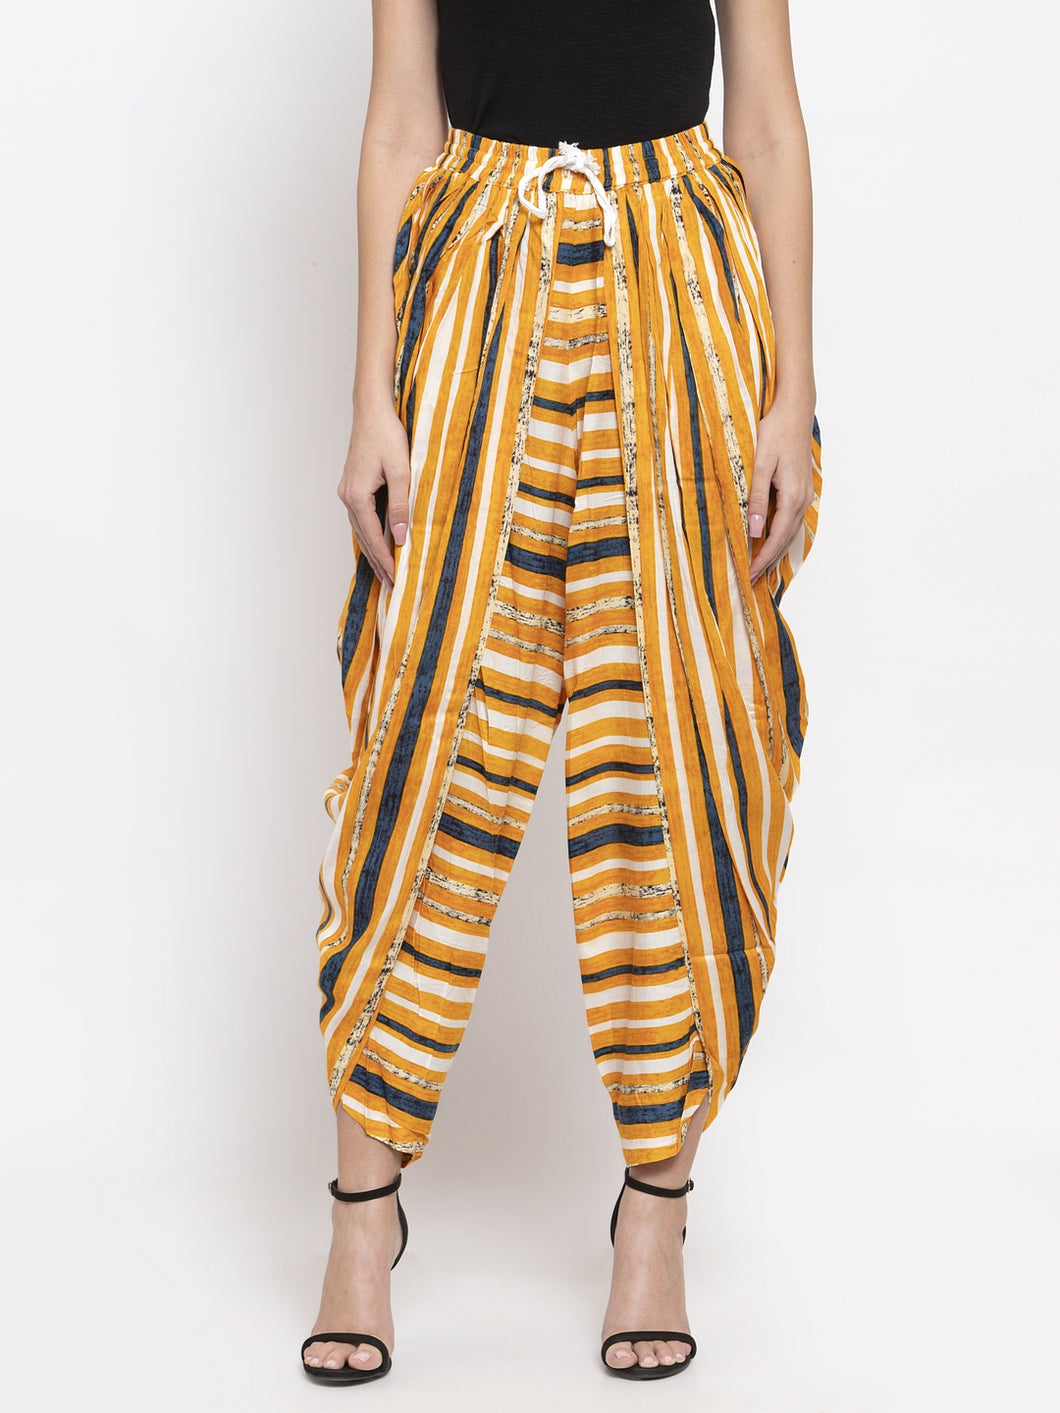 Jompers Women Yellow and Blue Stripped Dhoti (JOD 2131 Yellow)